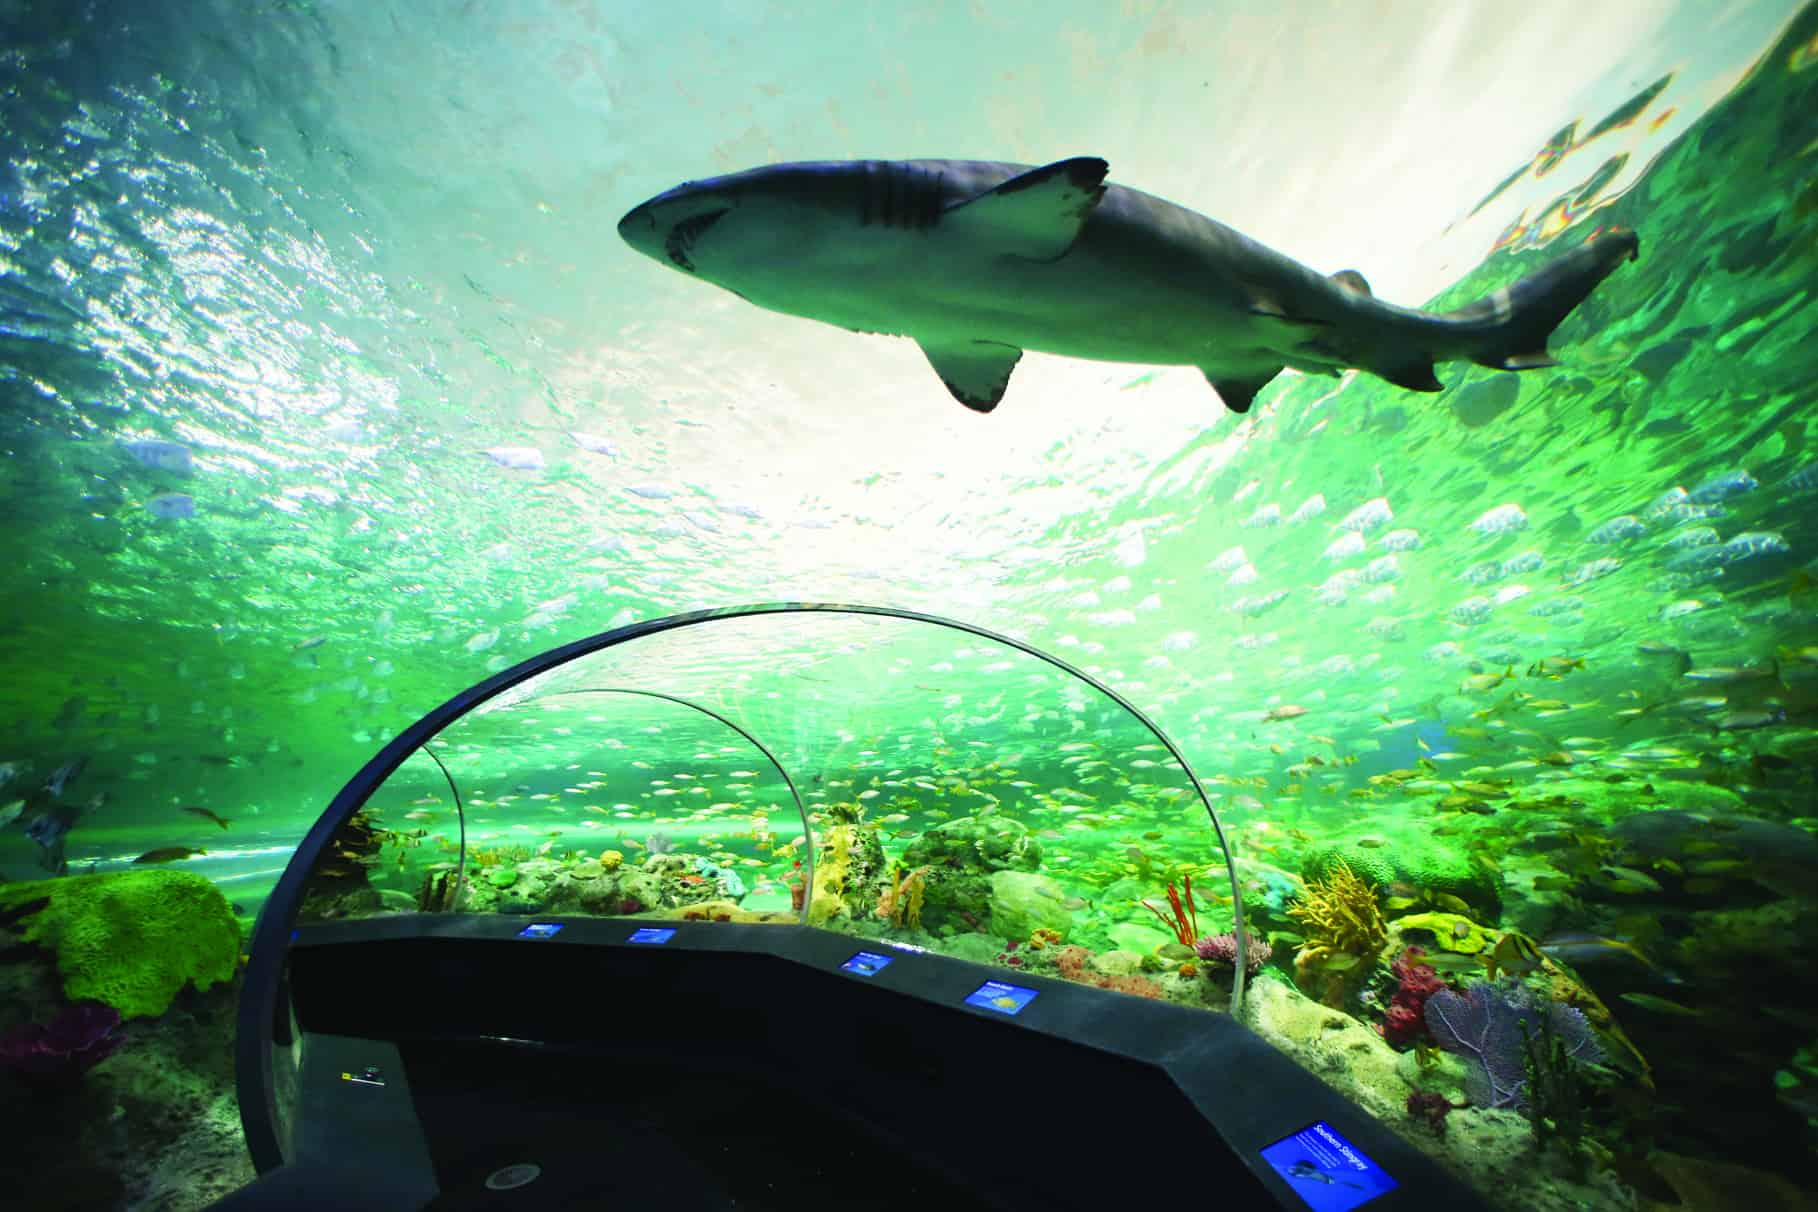 Ripley's Aquarium brings the ocean downtown